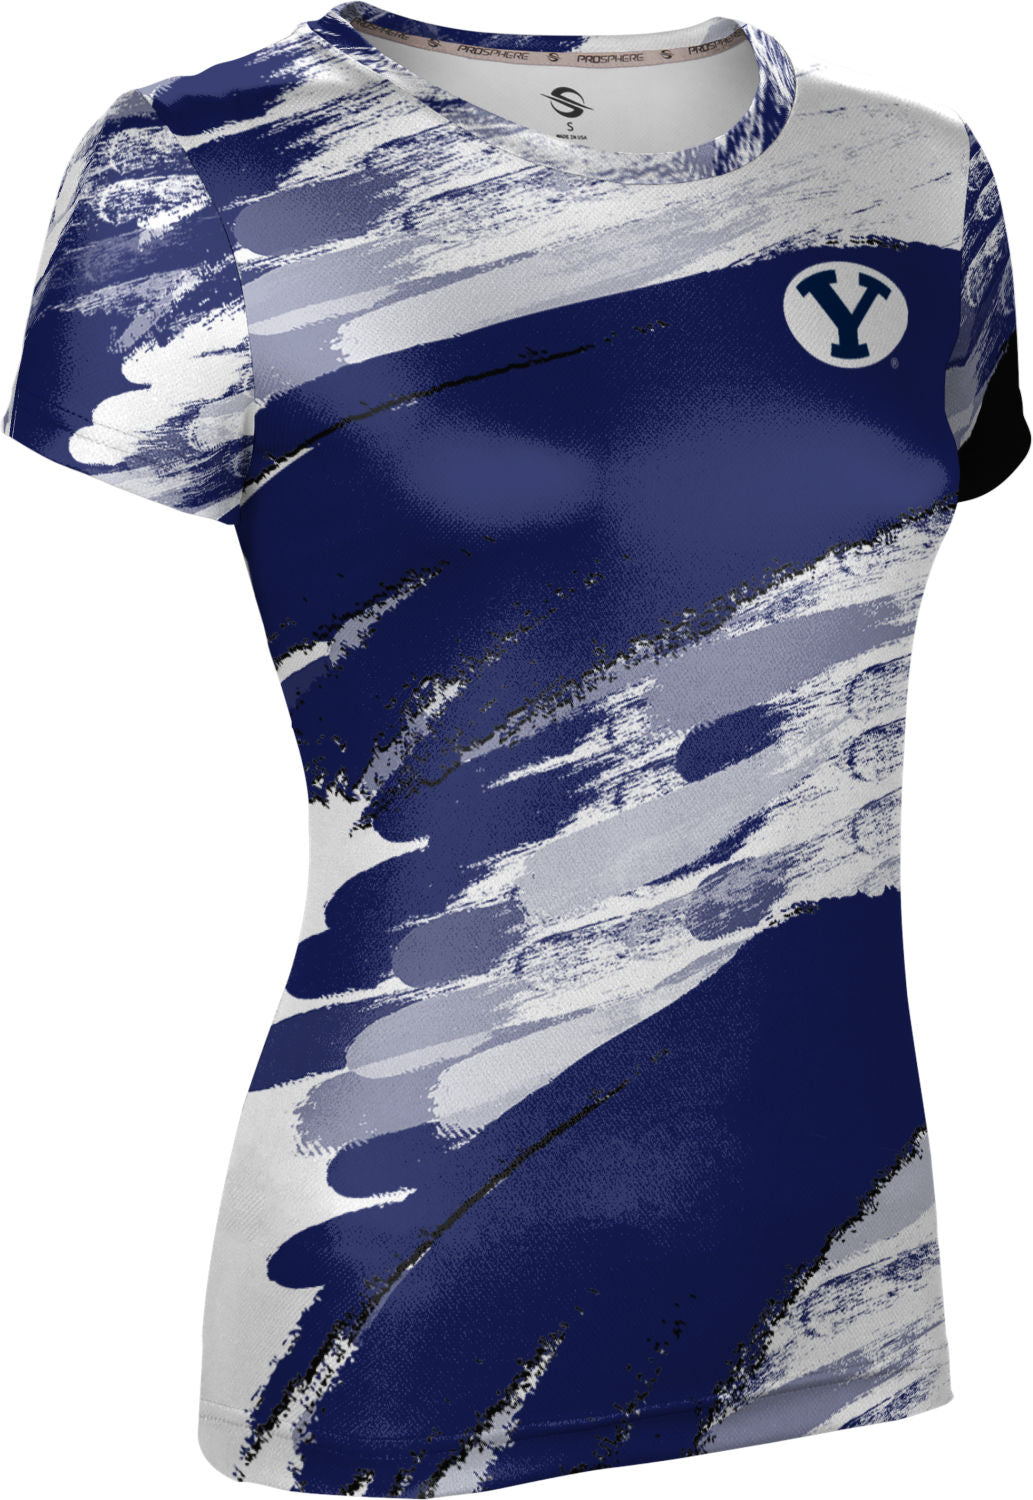 Brigham Young University: Women's T-shirt - Streak